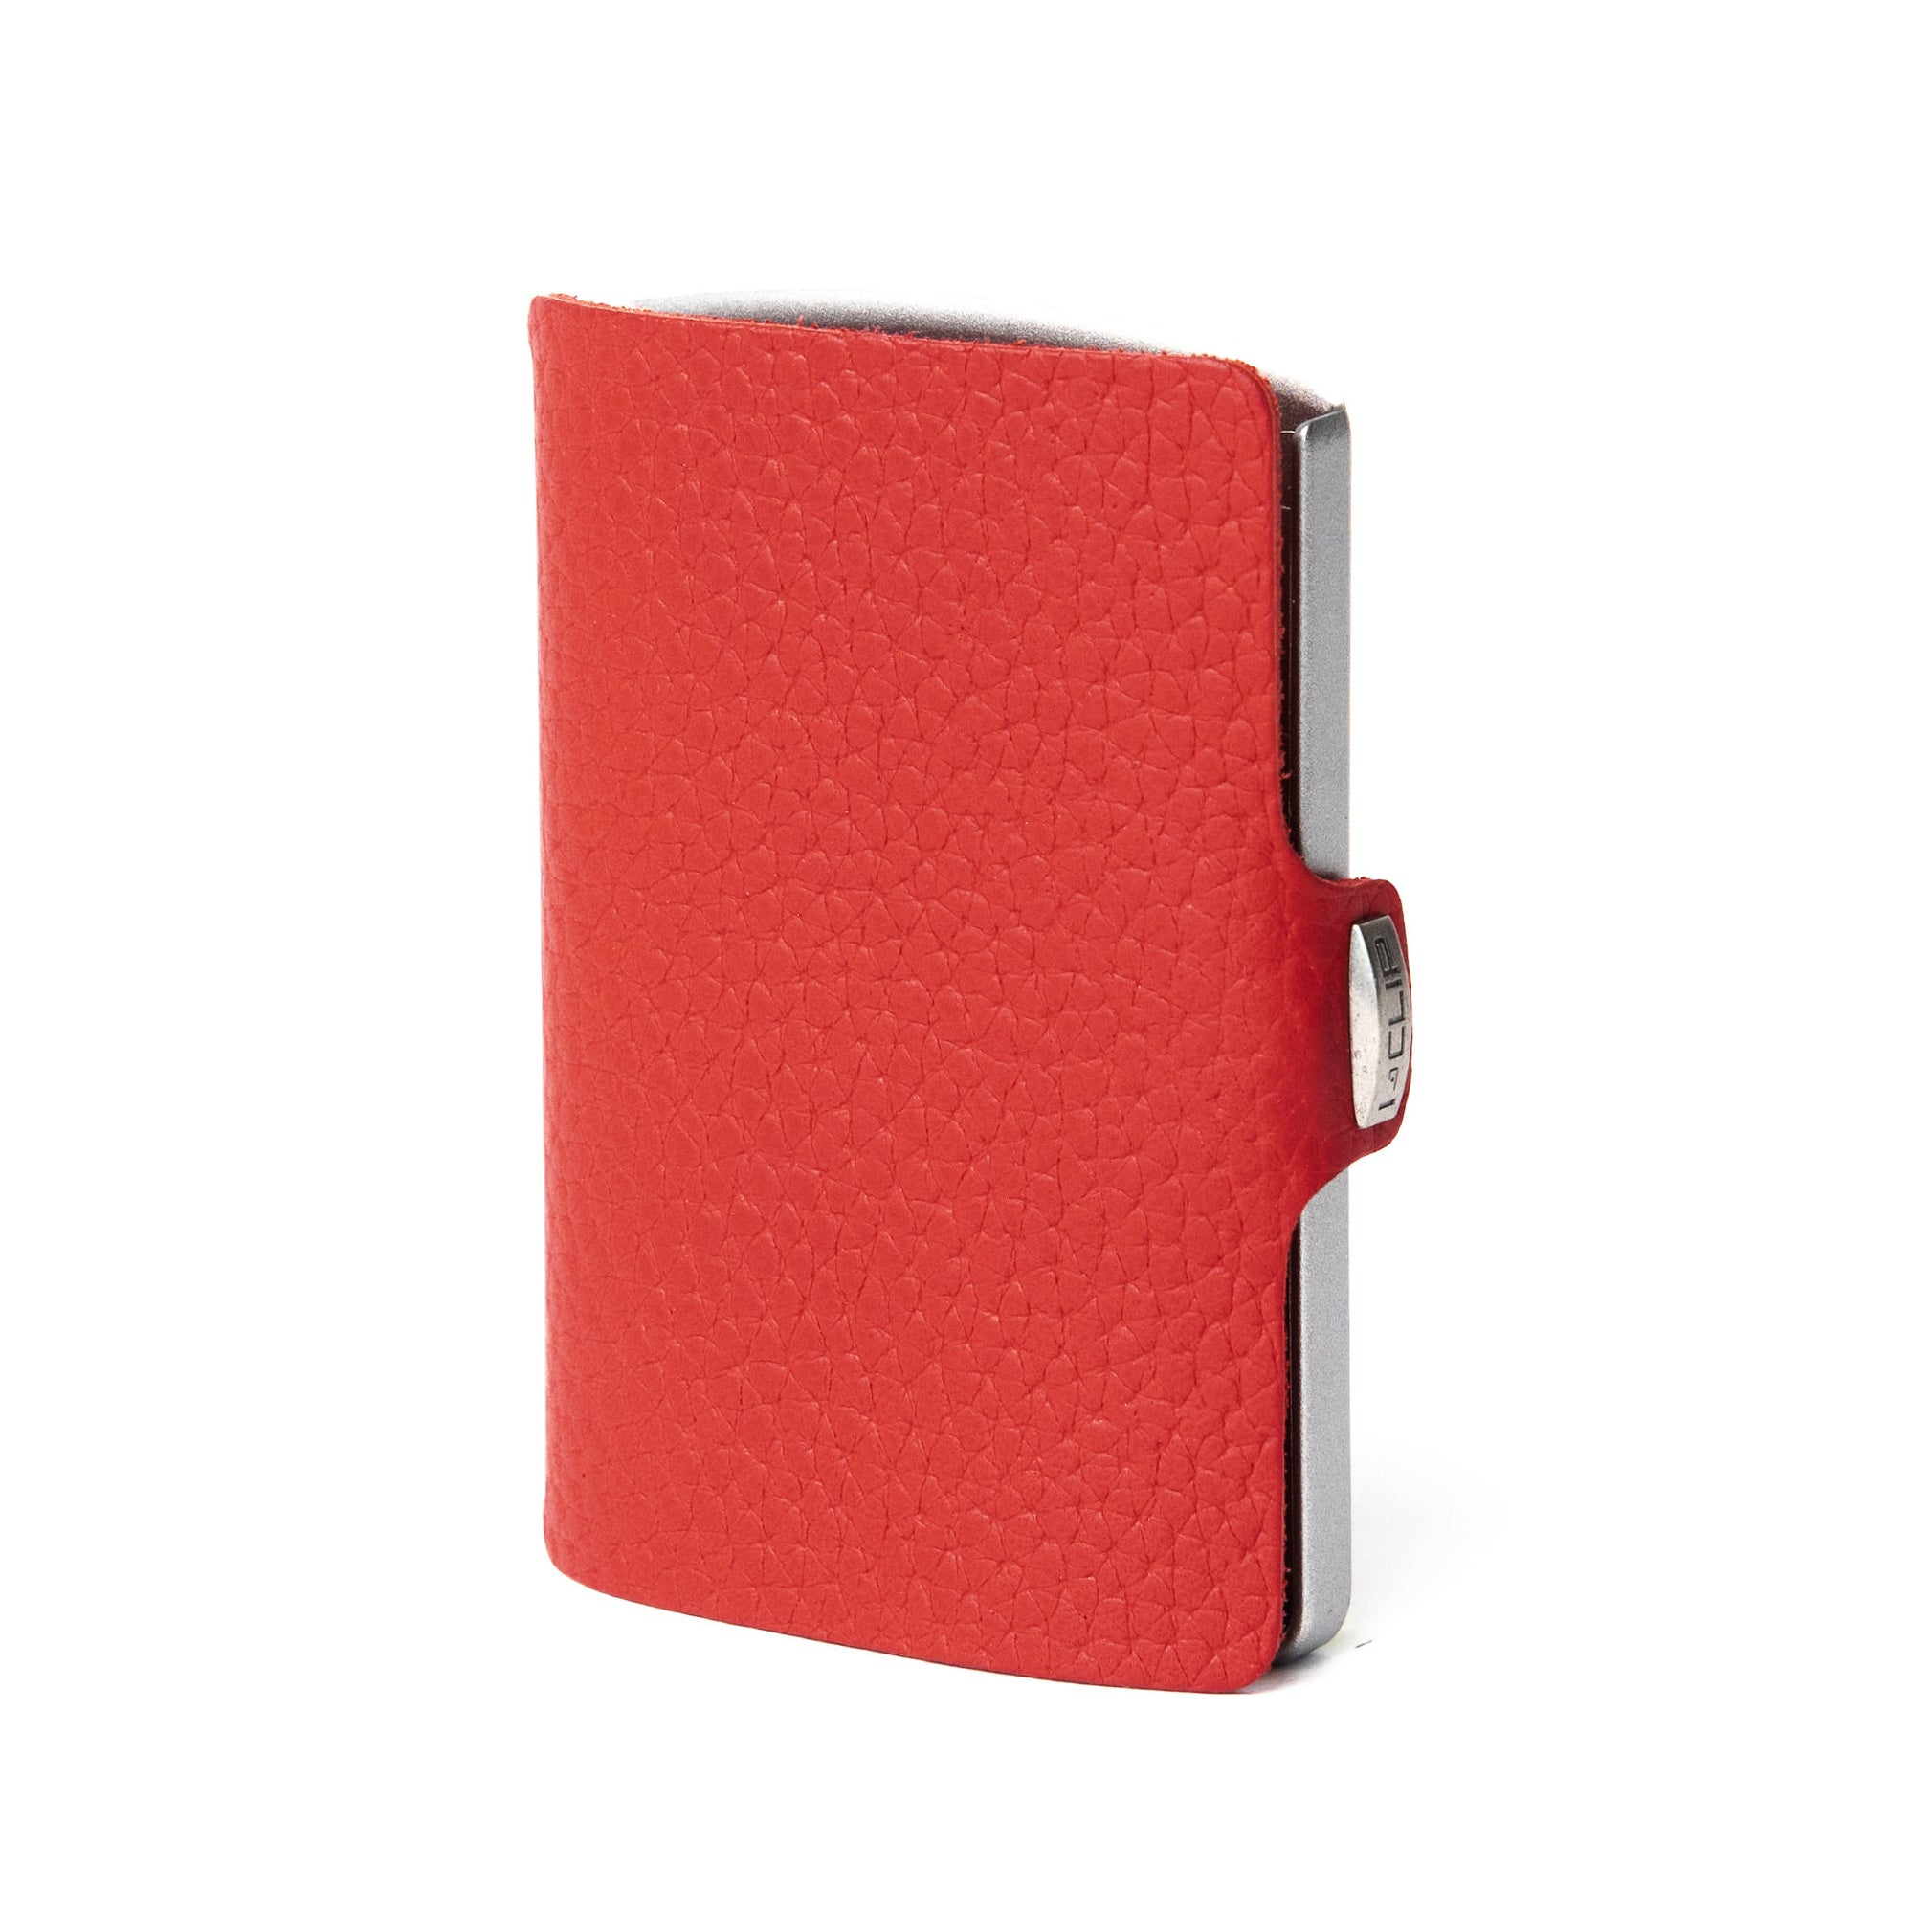 Full Grain Leather - Red / Metallic Gray Frame - I-CLIP